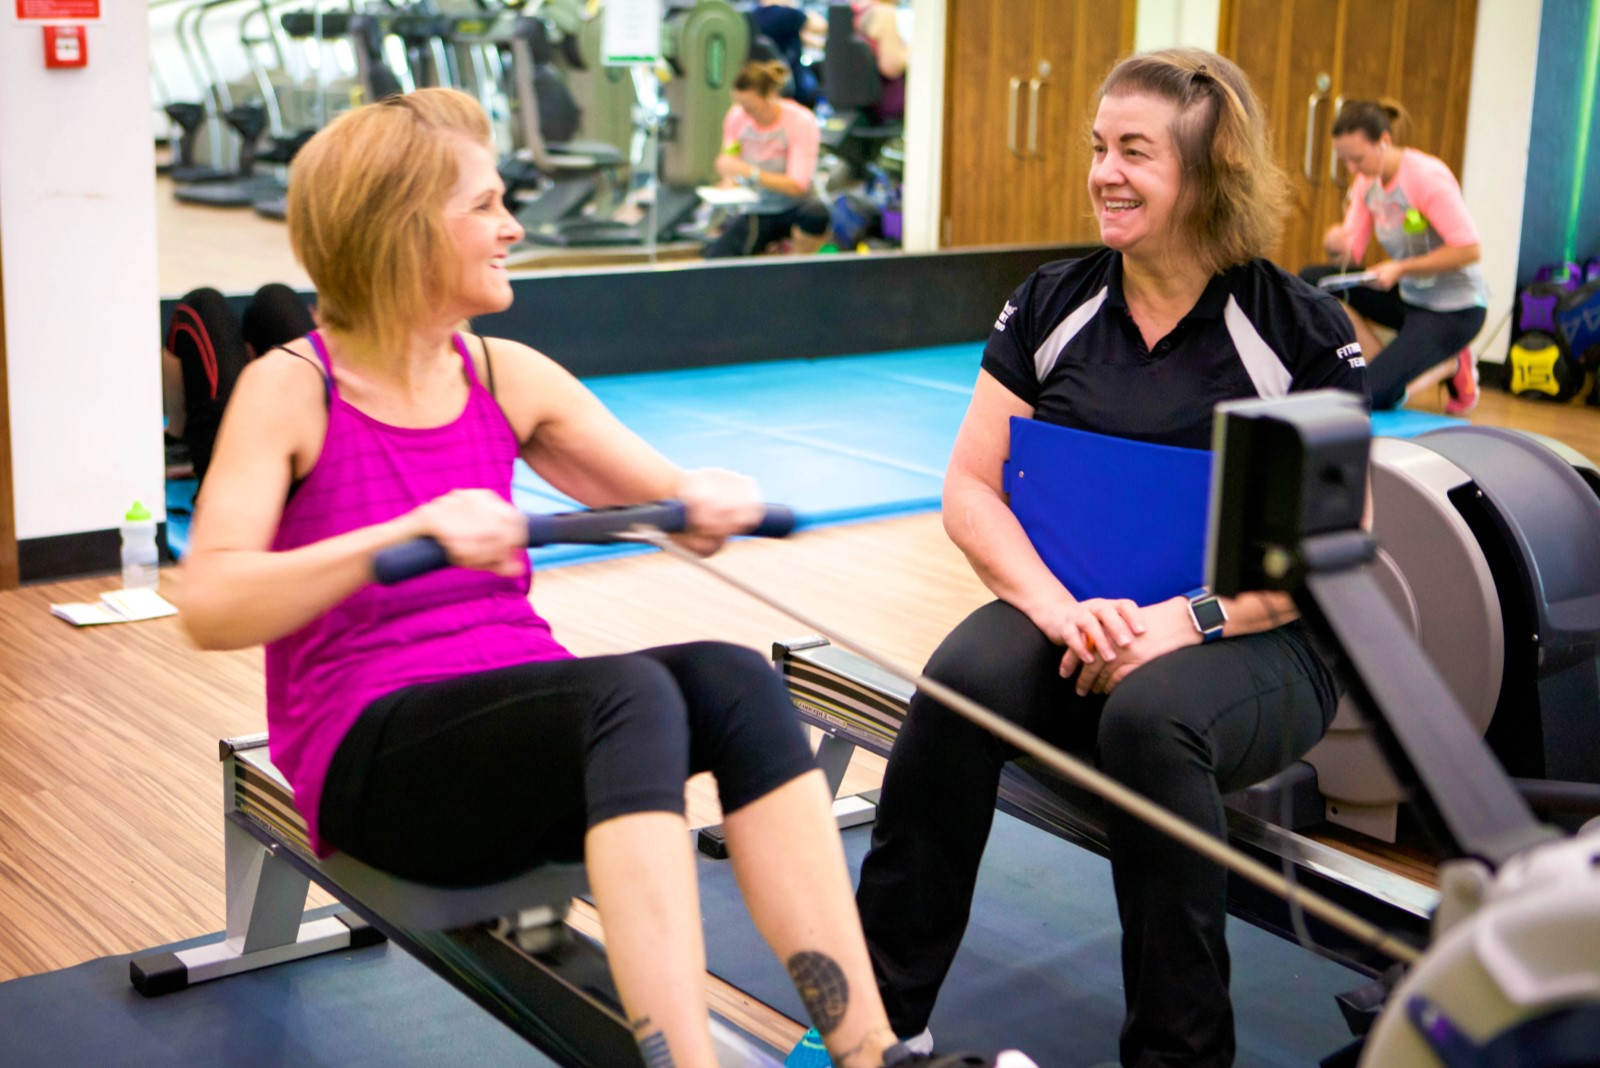 instructor supporting person on rowing machine.jpg